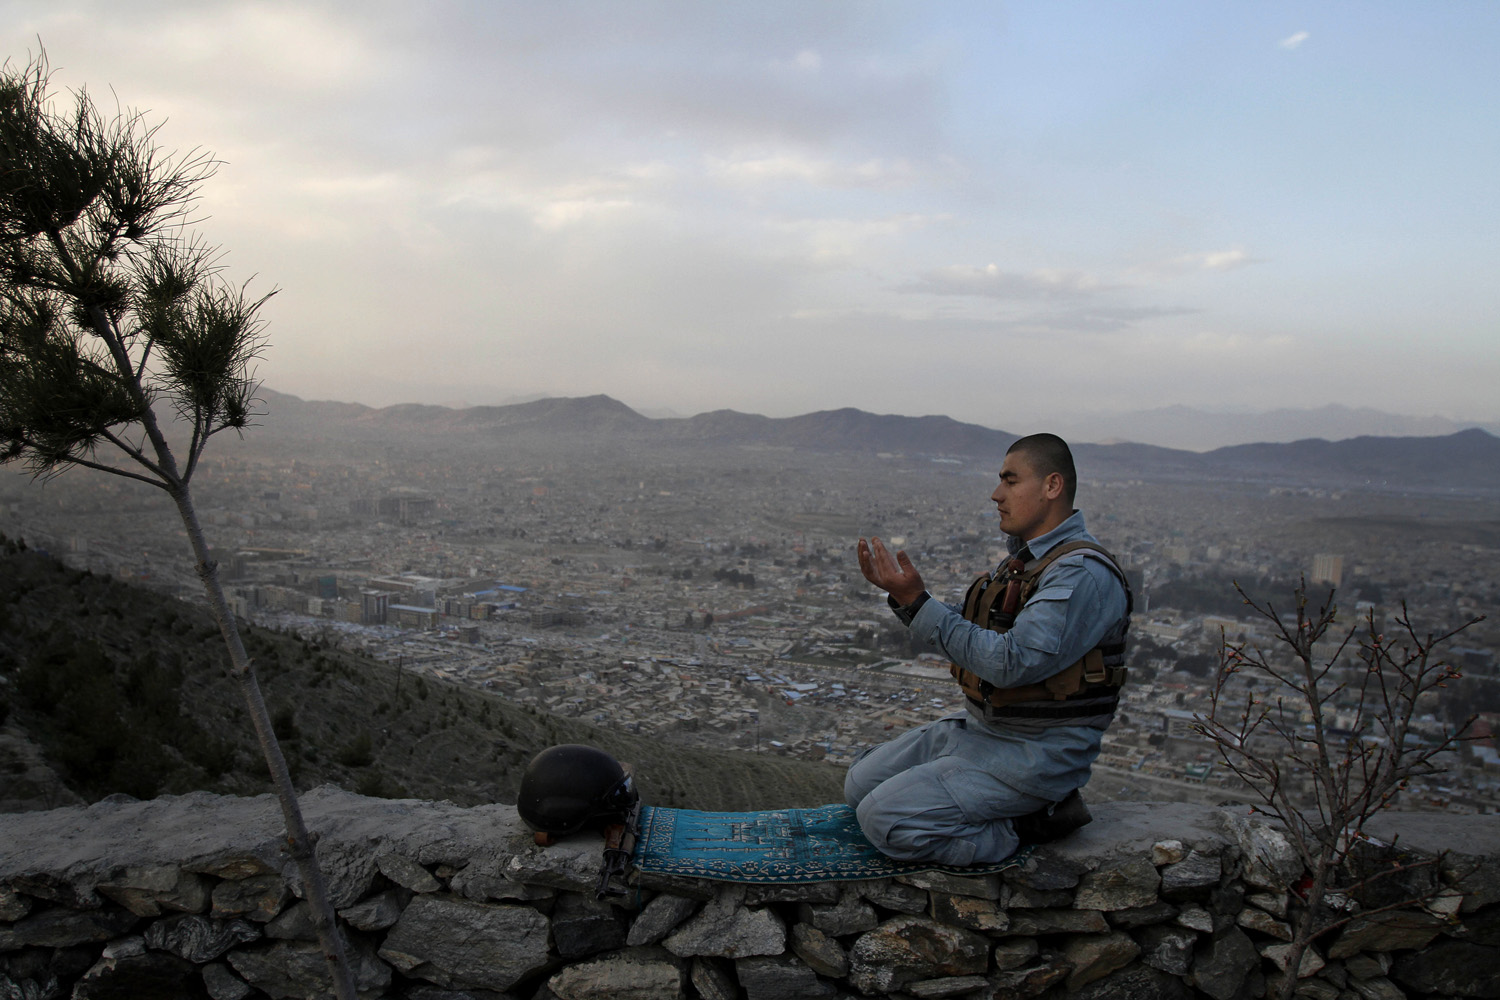 March 31, 2013. An Afghan police man offers evening prayers on a hill overlooking Kabul, Afghanistan.